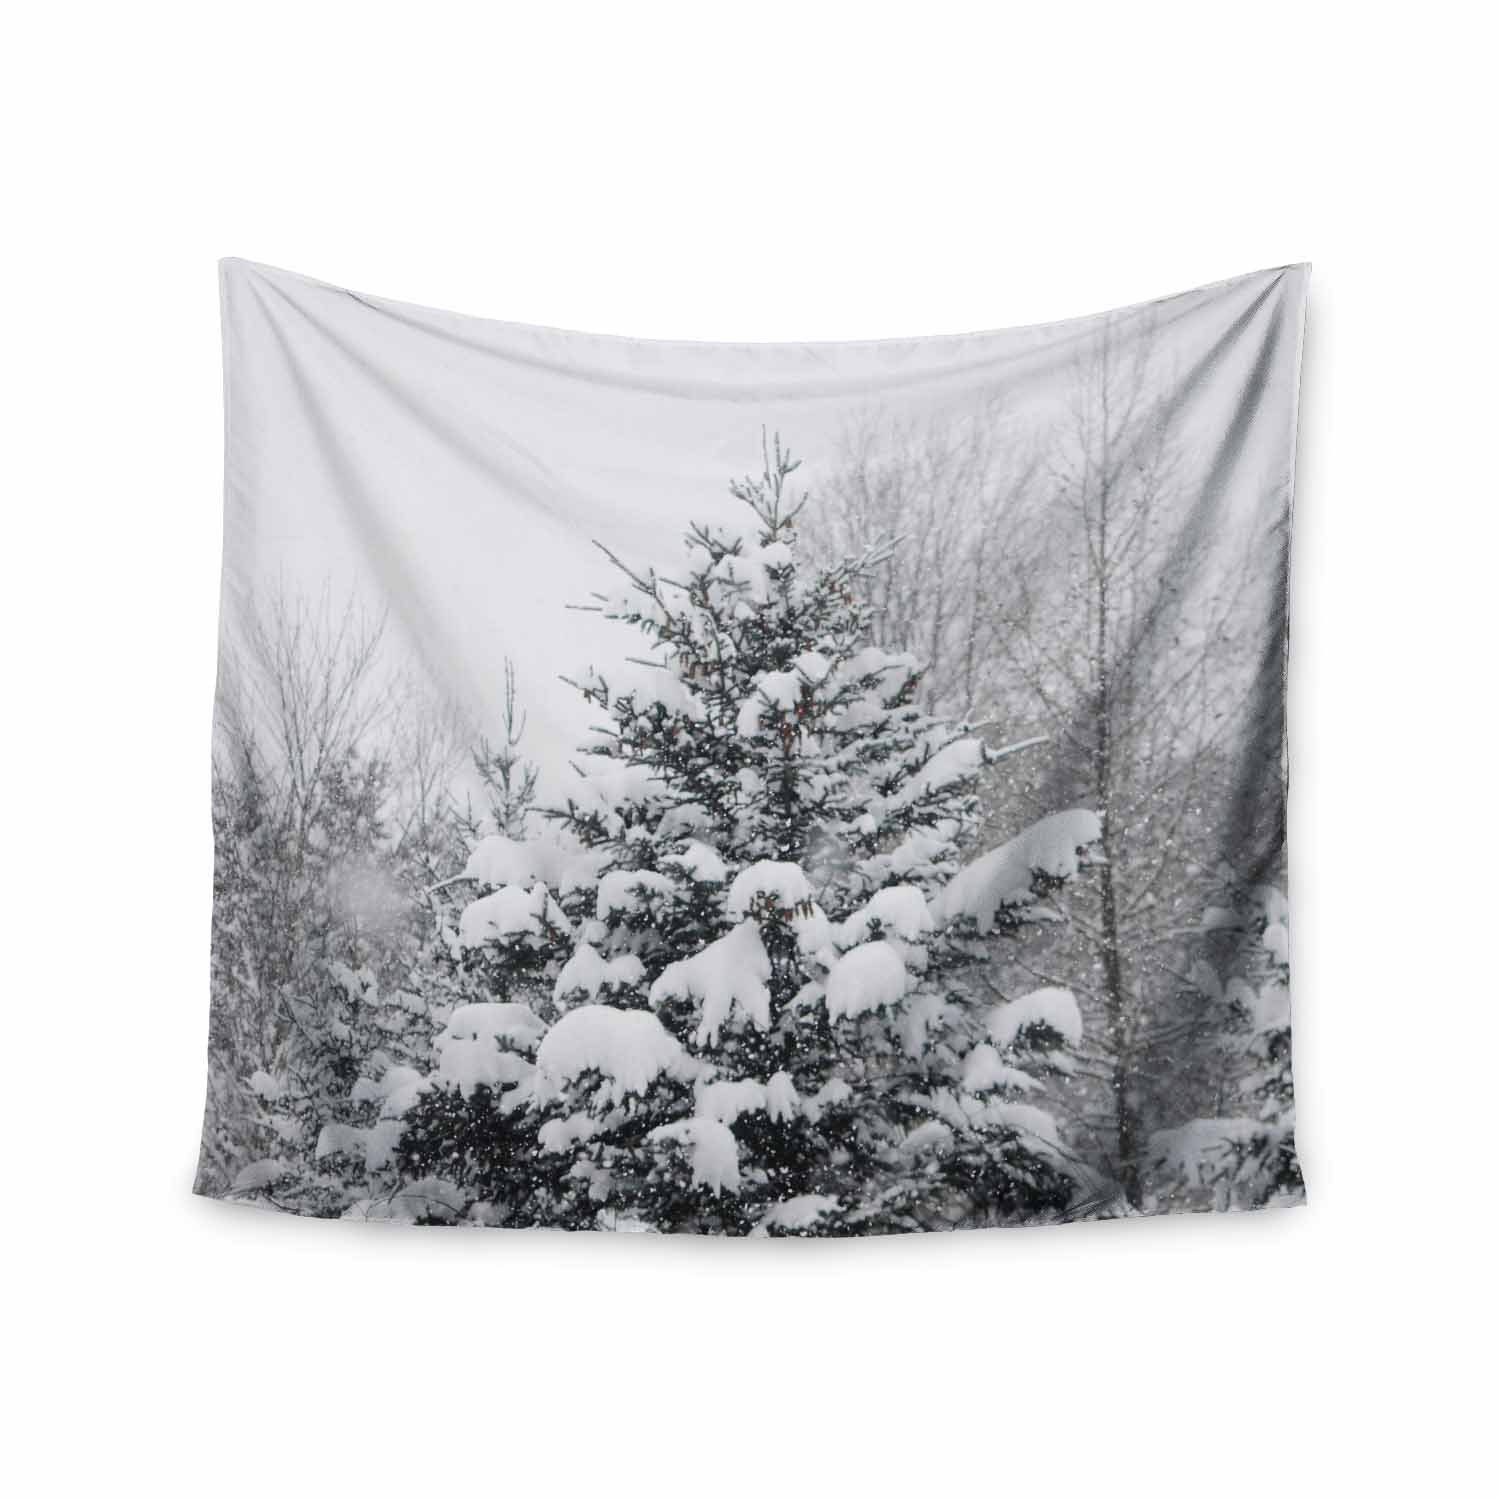 51 x 60 Wall Tapestry Kess InHouse Chelsea Victoria Cool Yule White Green Nature Photography